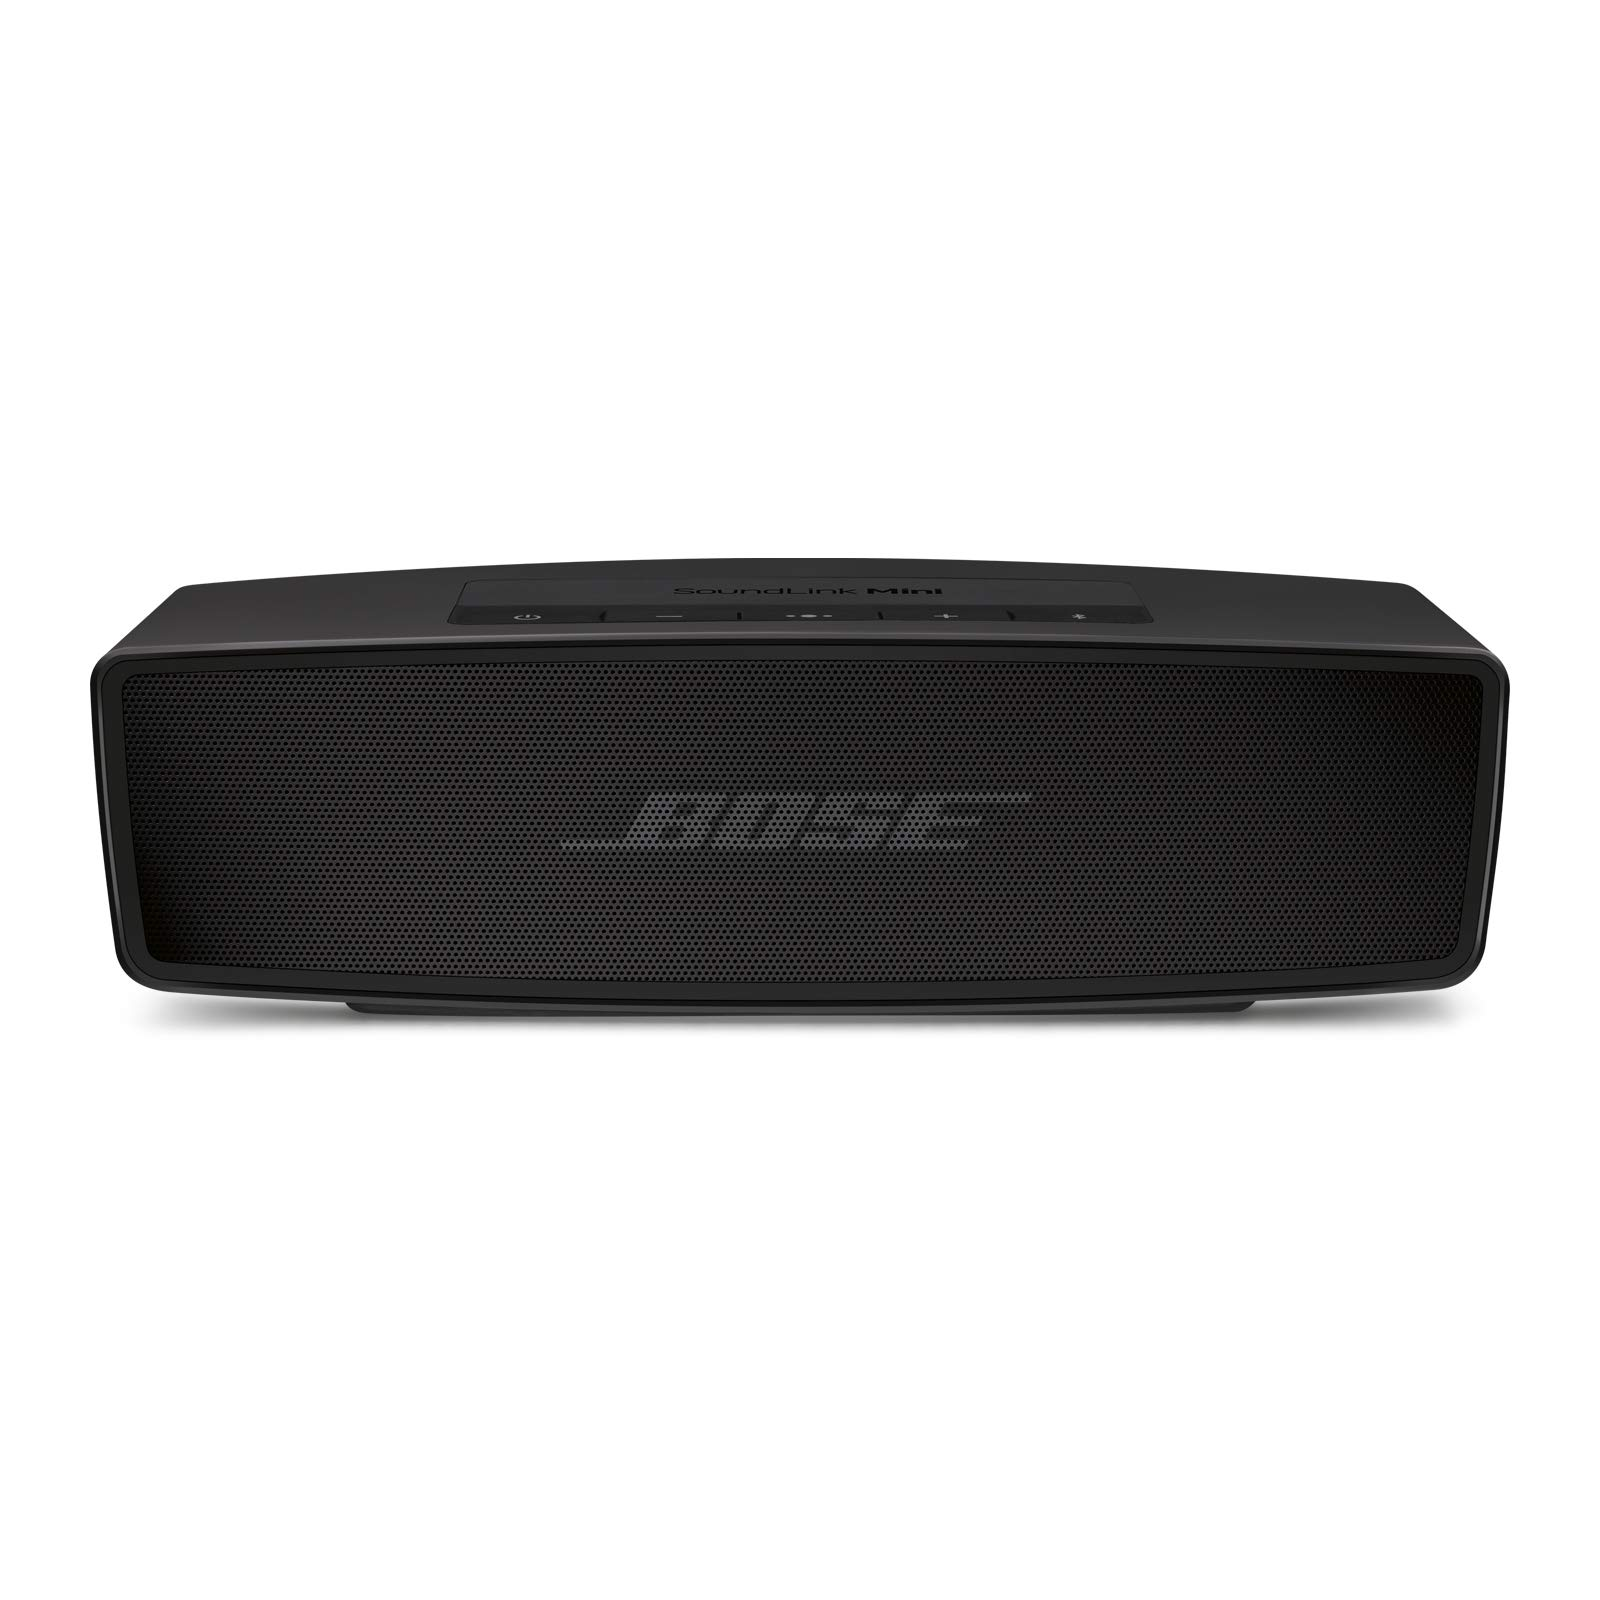 Bose SoundLink Mini Bluetooth Speaker Ii—Special Edition, Black